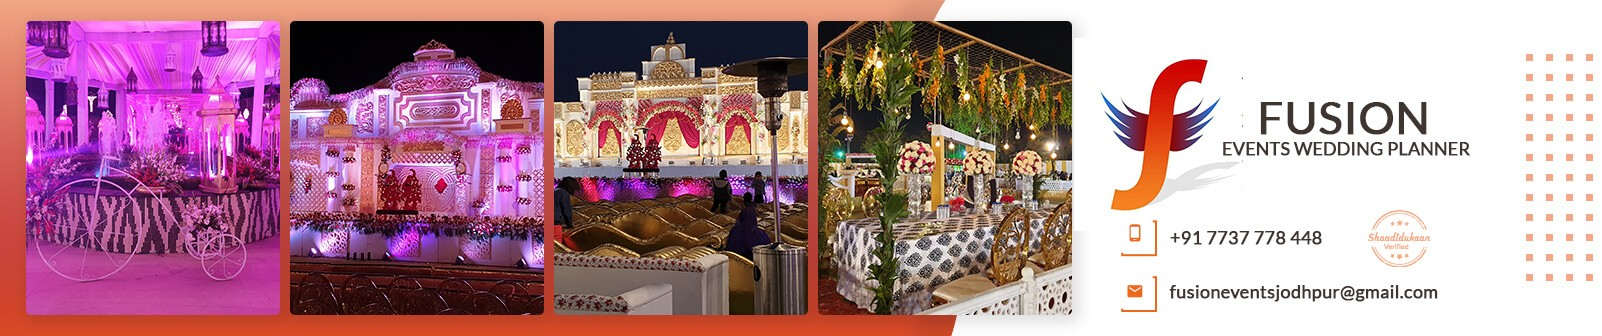 Fusion Events Wedding Planner